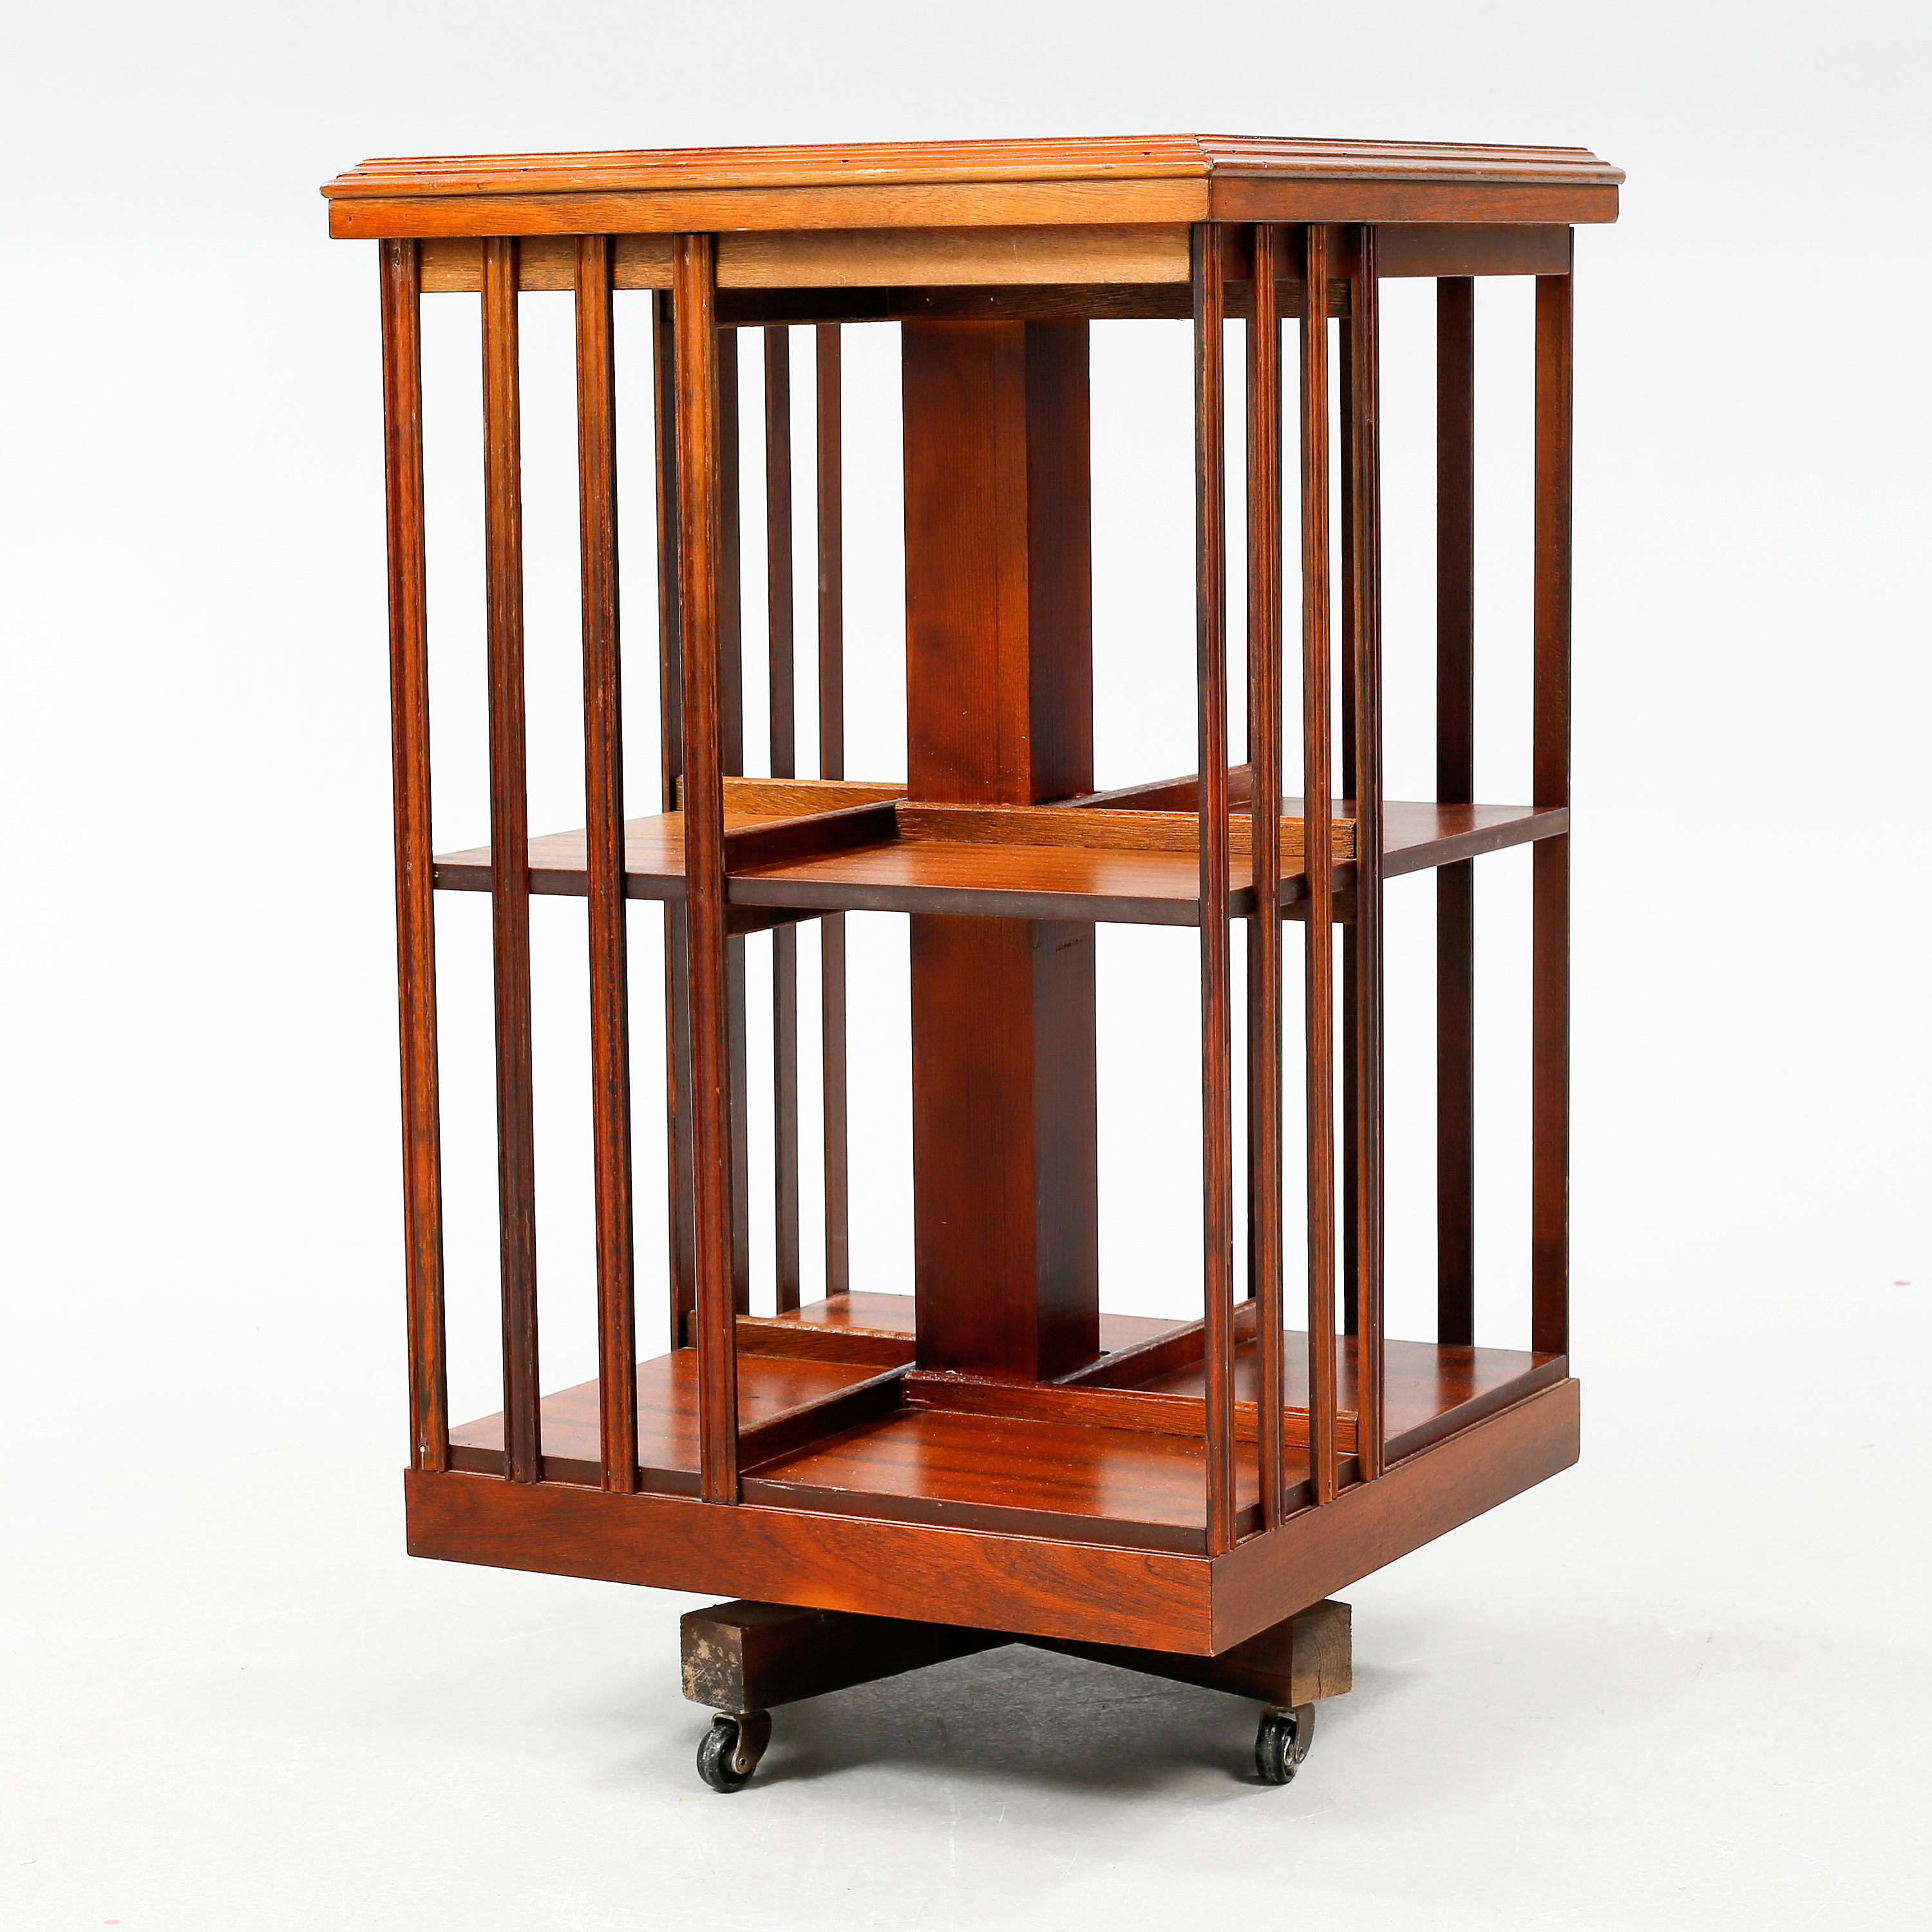 A Rotating Bookcase From The Fourth Quarter Of The 20th